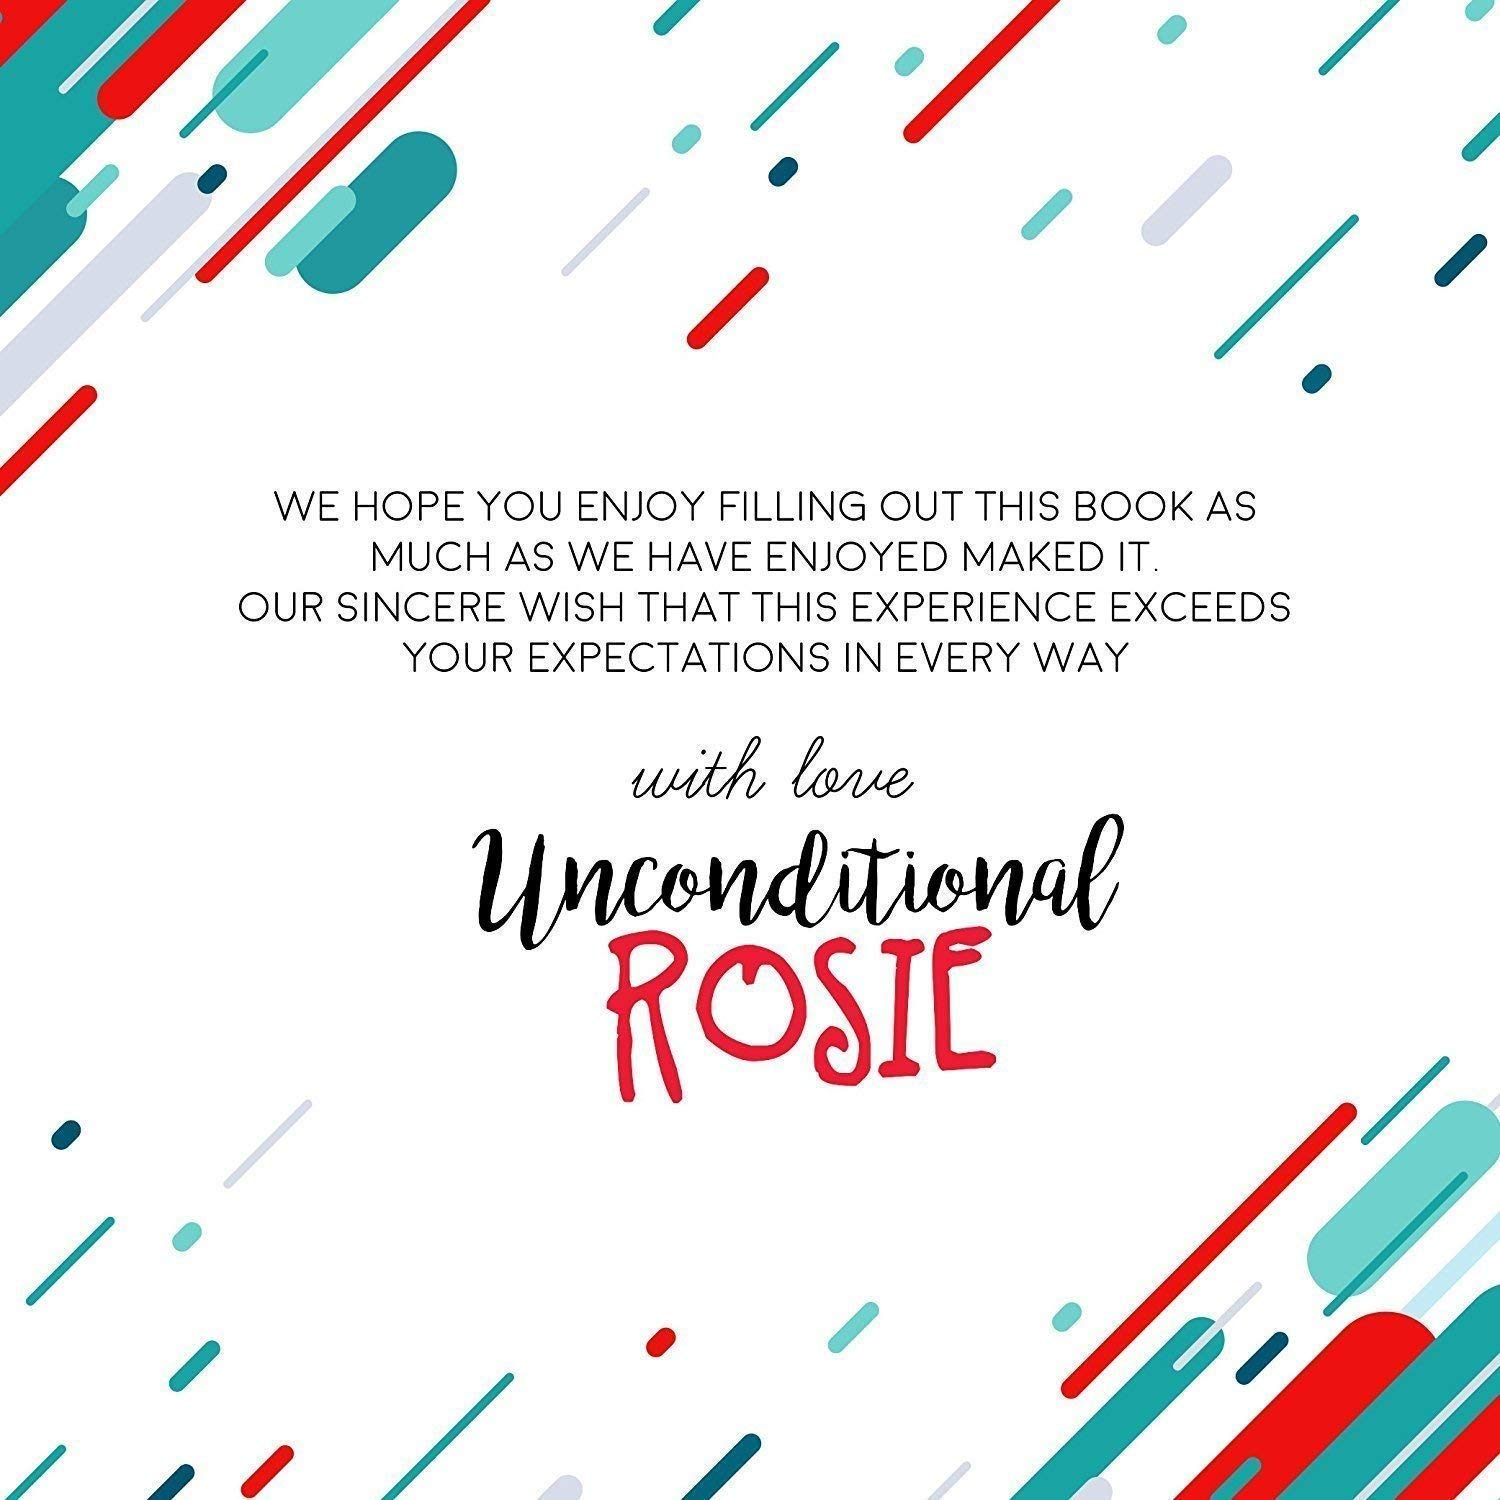 Best Boyfriend Ever Memory Book - The Best Romantic Gift Ideas For Your Boyfriend! Your BF Will Love This Cute Present For His Birthday, Valentine's Day, Christmas Or A Special Date! by Unconditional Rosie (Image #7)